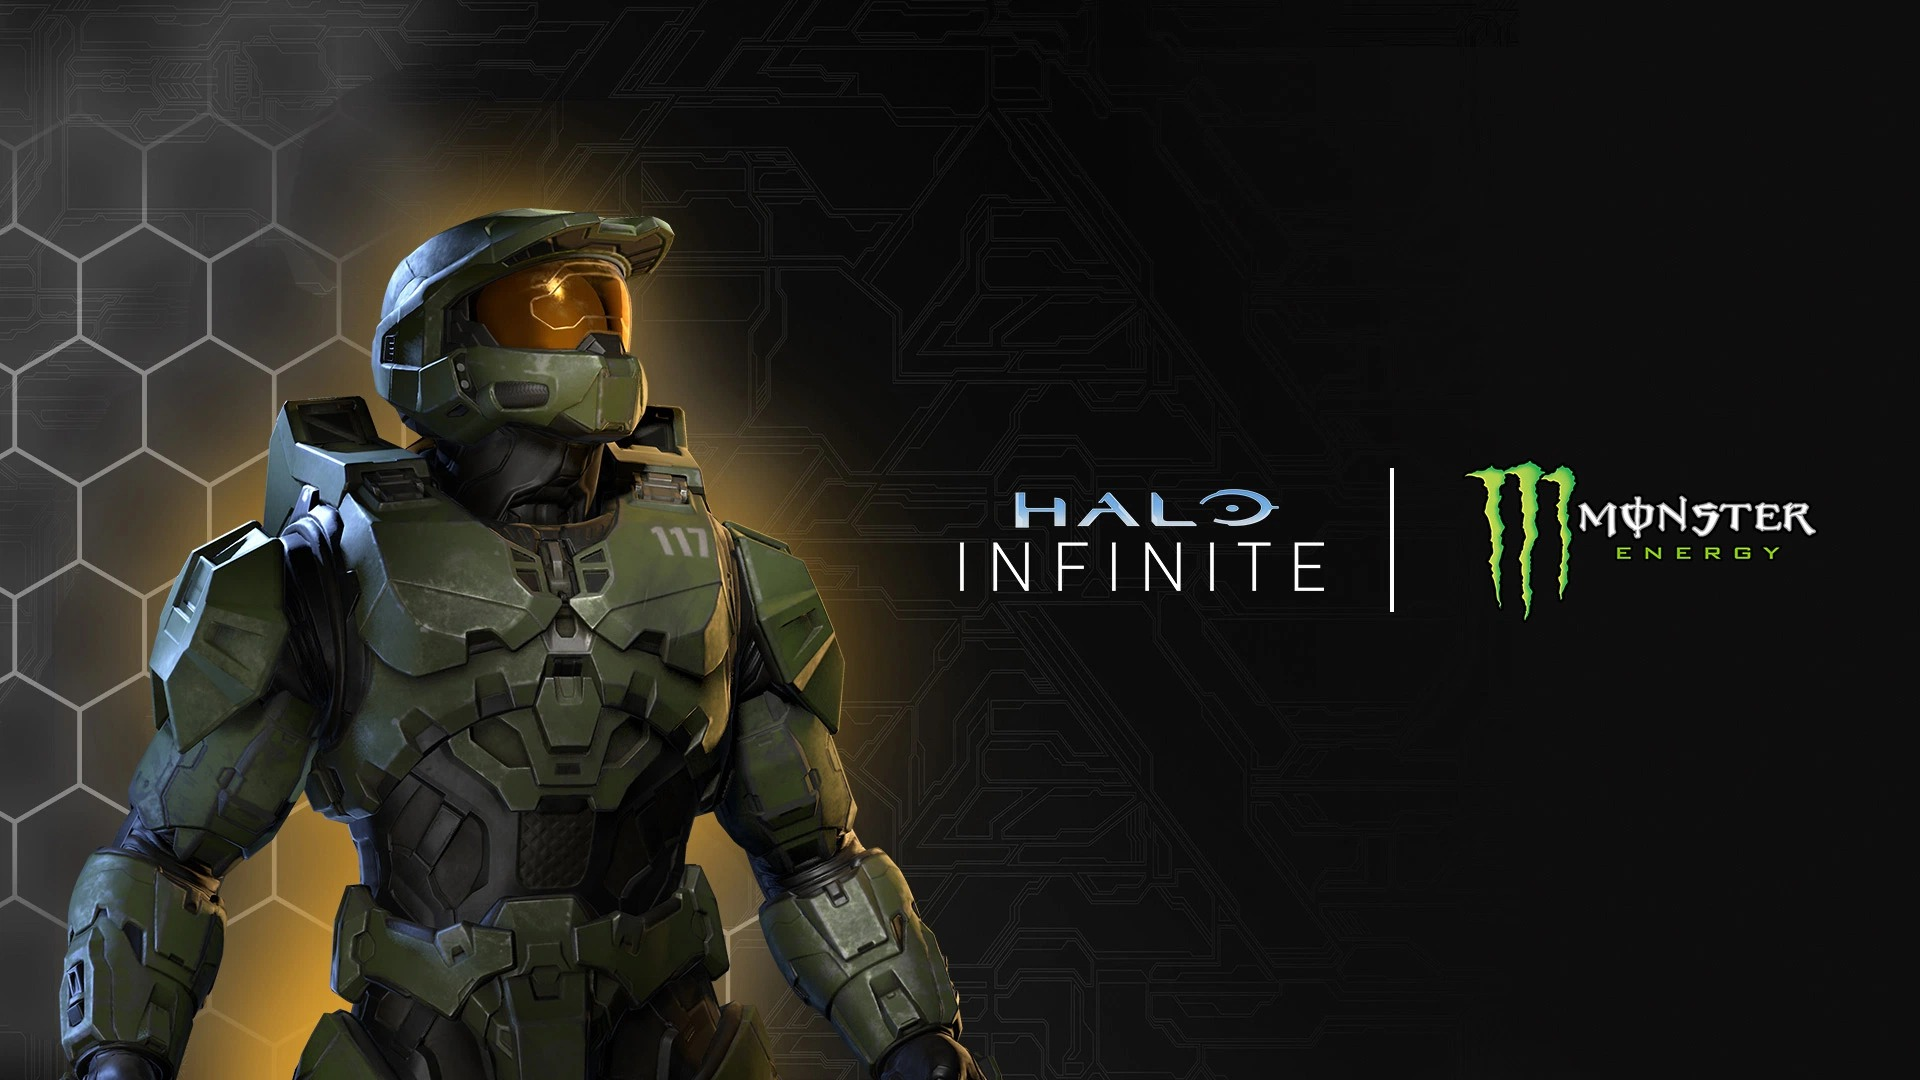 Halo Infinite : Halo Infinite Reveals New Vehicle Skins and More New Armor